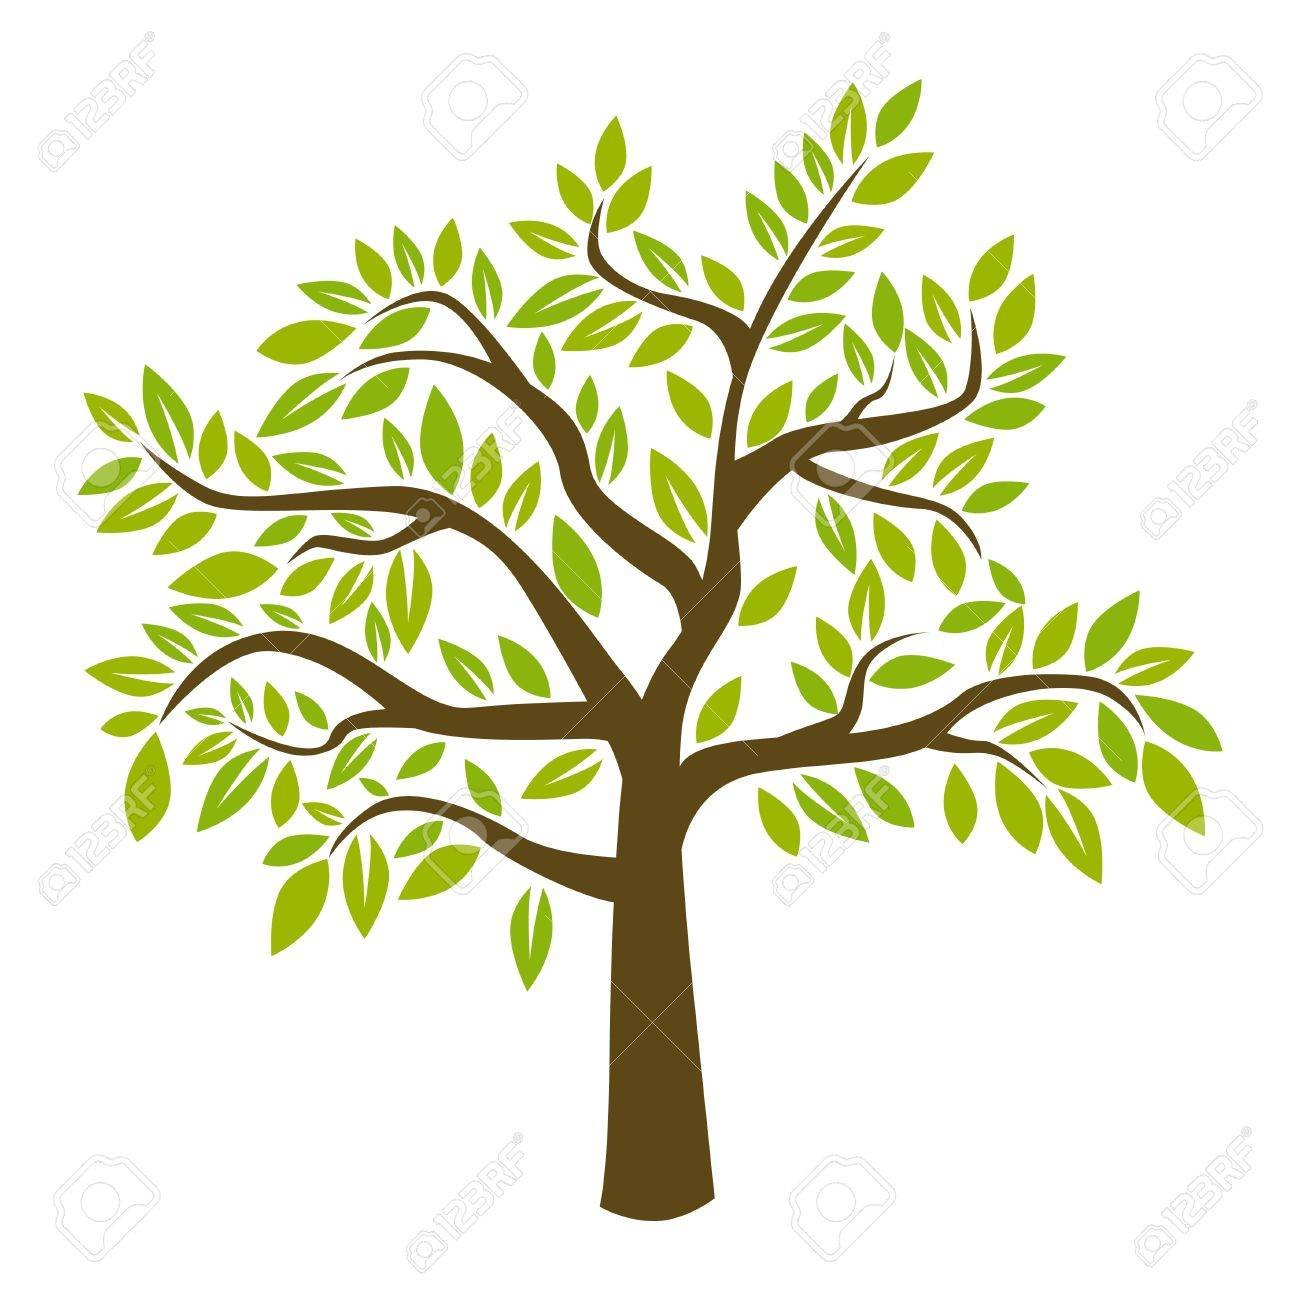 silhouette of tree vector illustration royalty free cliparts rh 123rf com tree vector freepik tree vector free icon